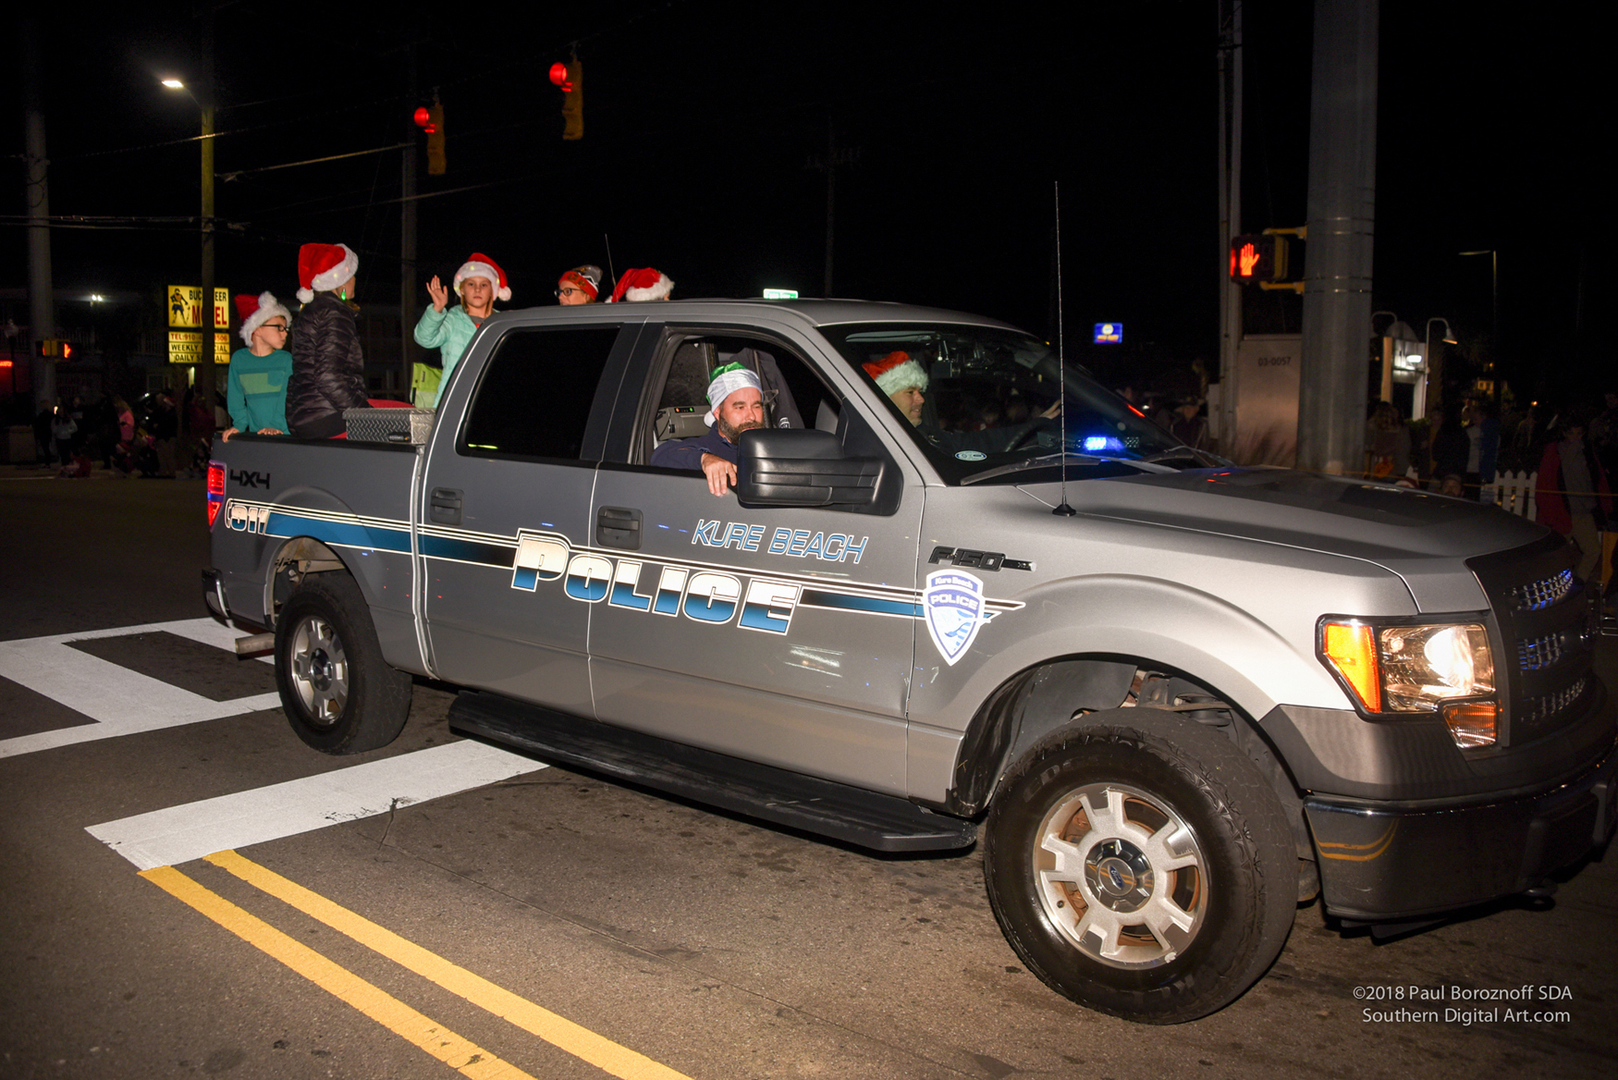 Carolina Beach Christmas Parade 2019 The Christmas Parade